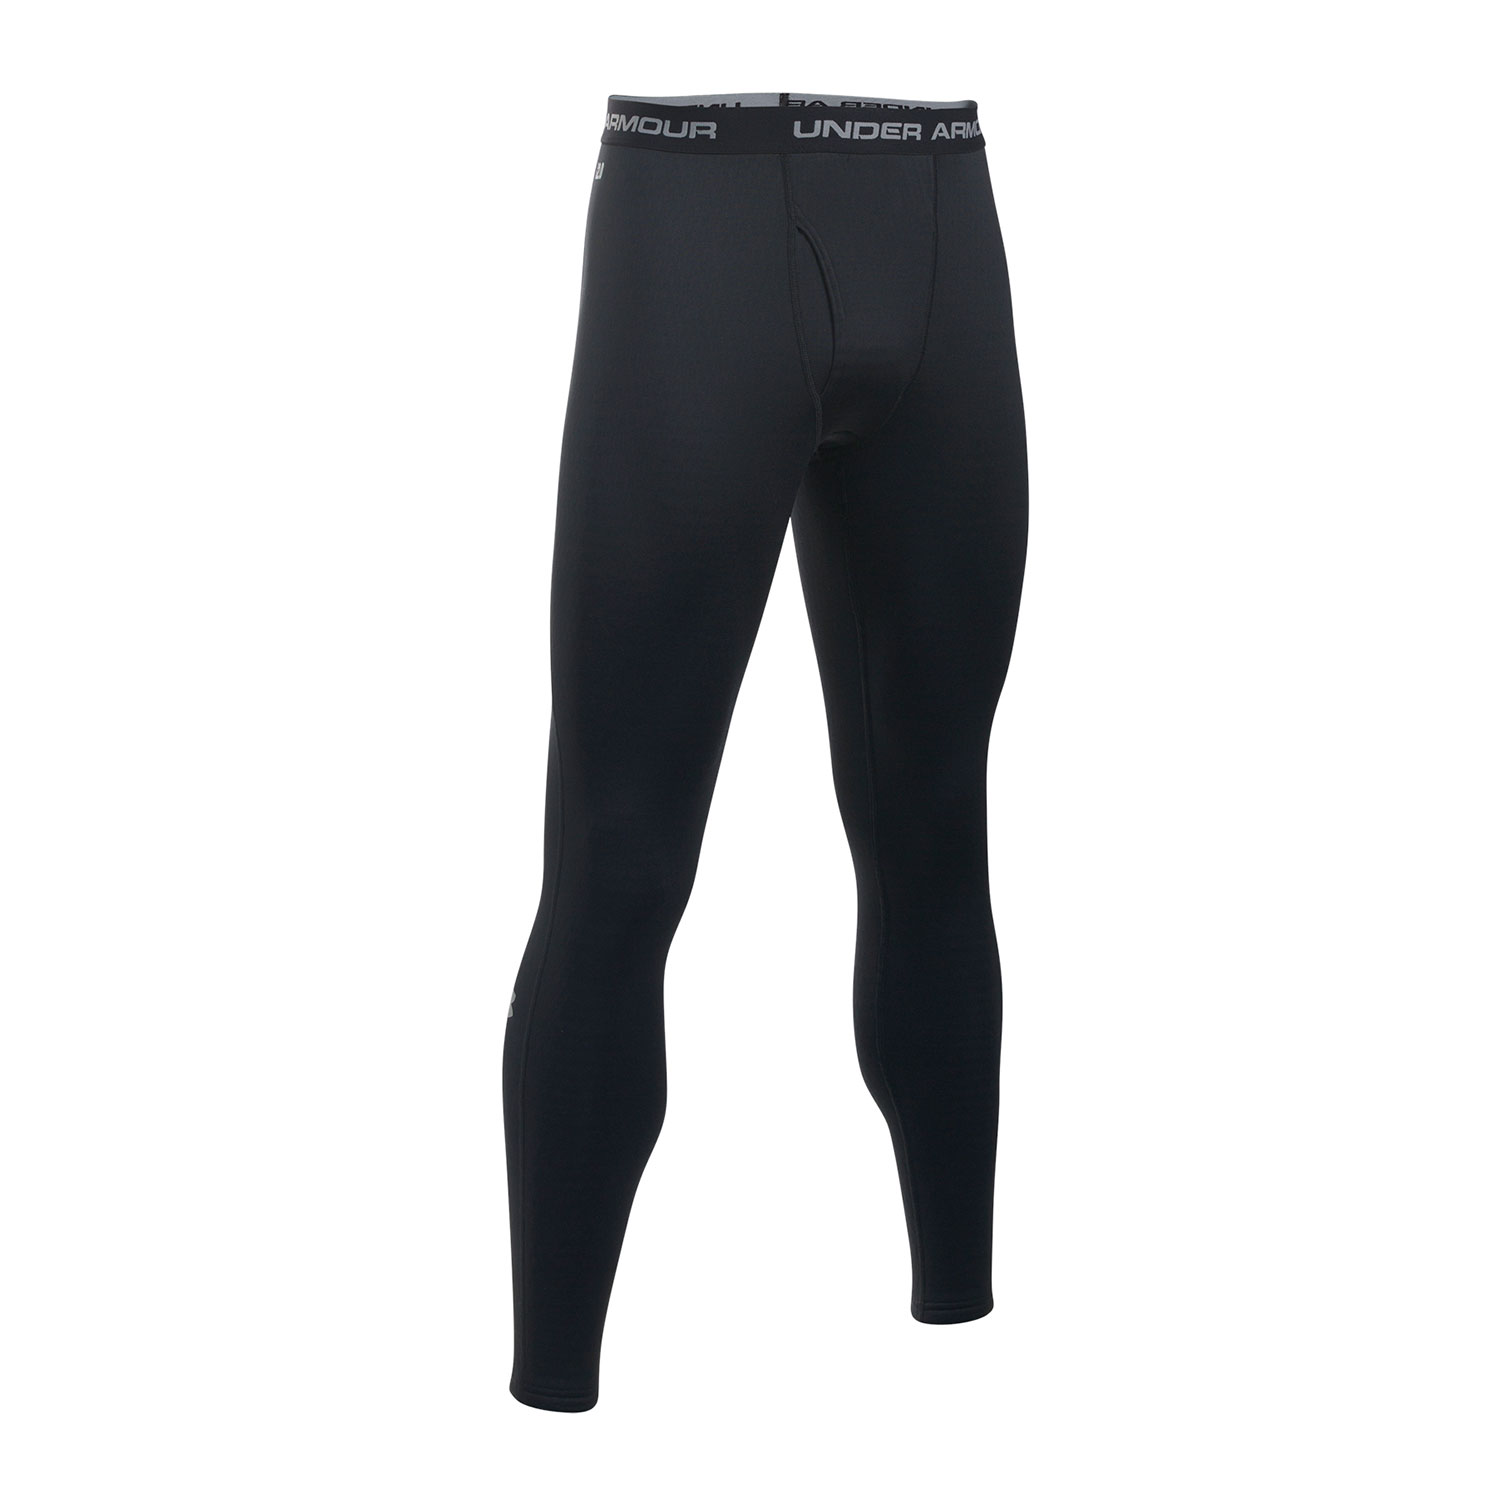 Under Armour Base 2.0 Men's Leggings